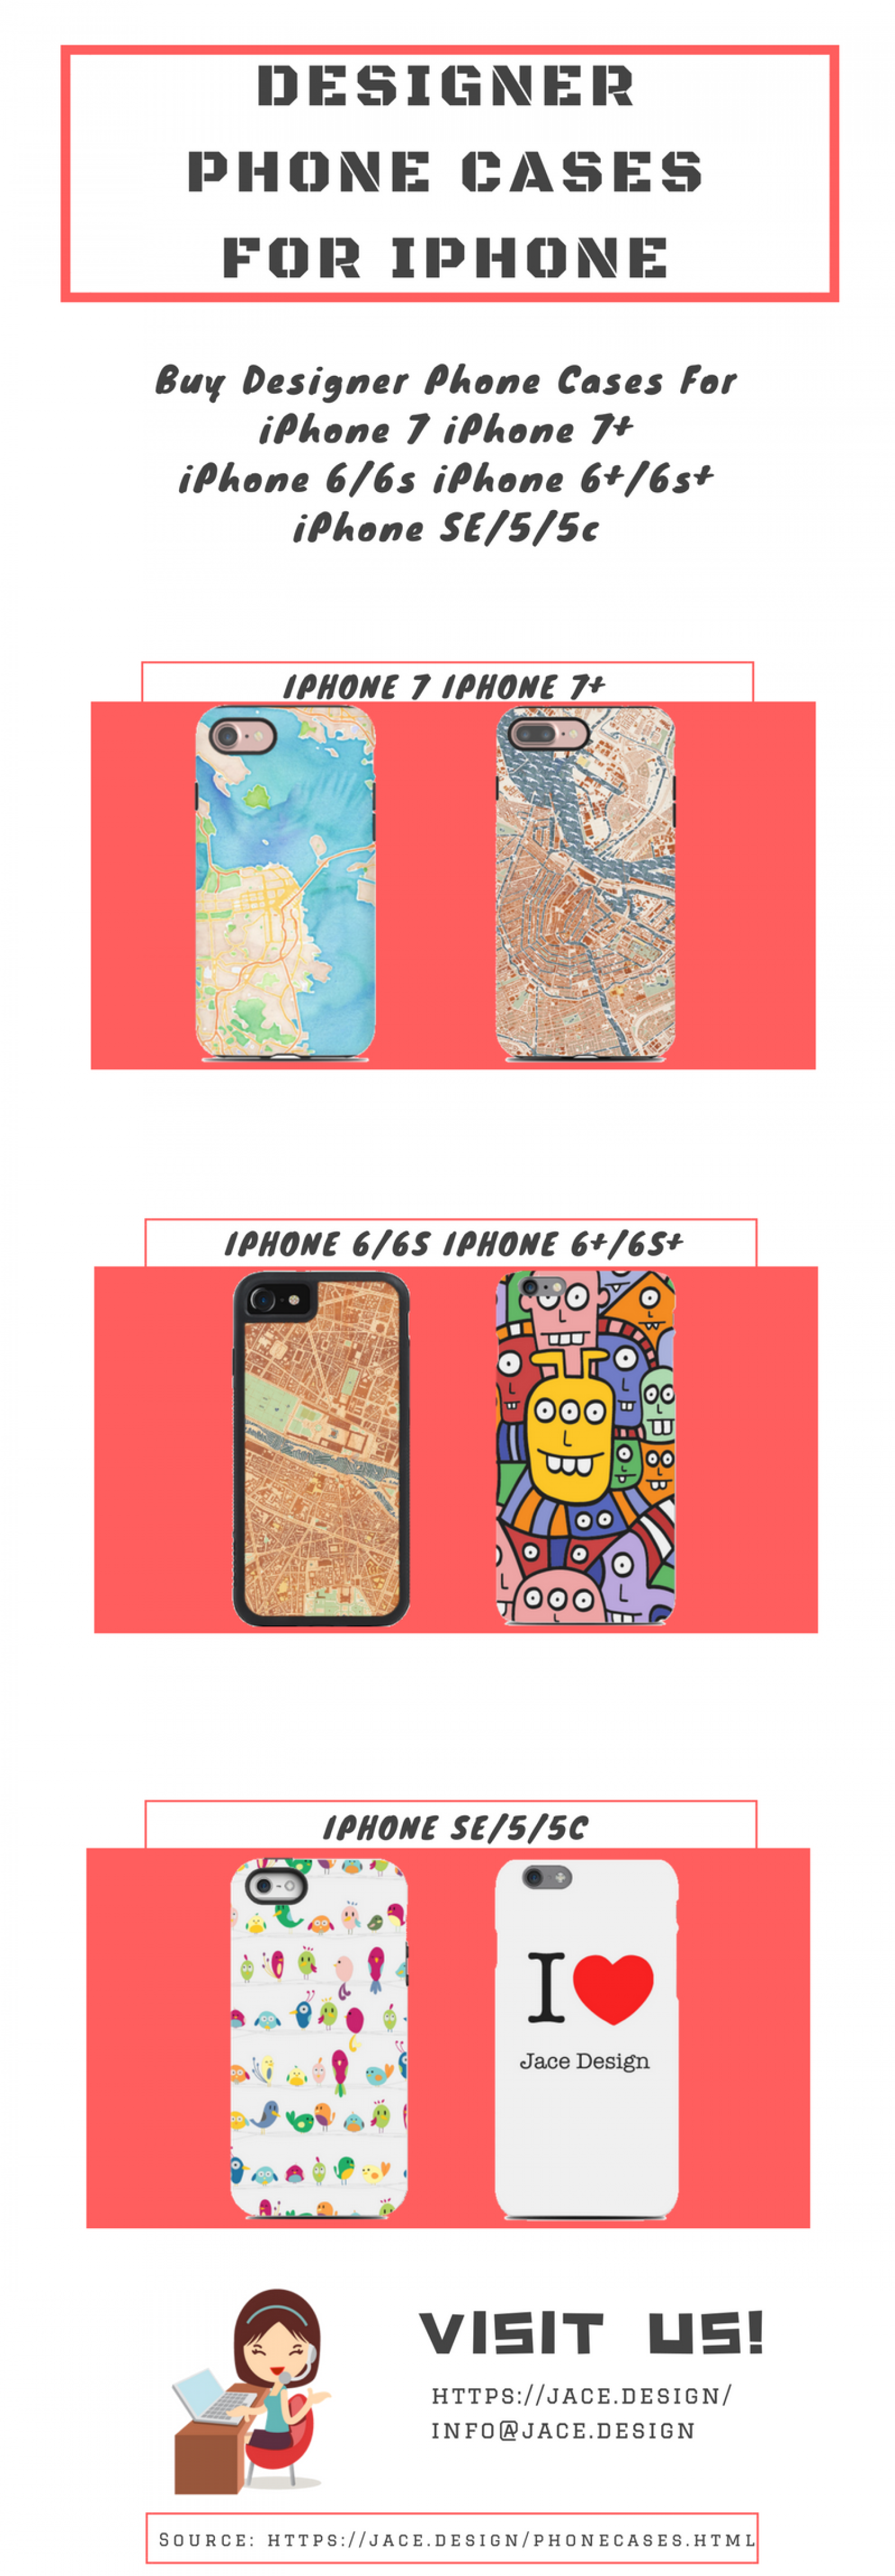 Designer Phone Cases For Iphone Infographic